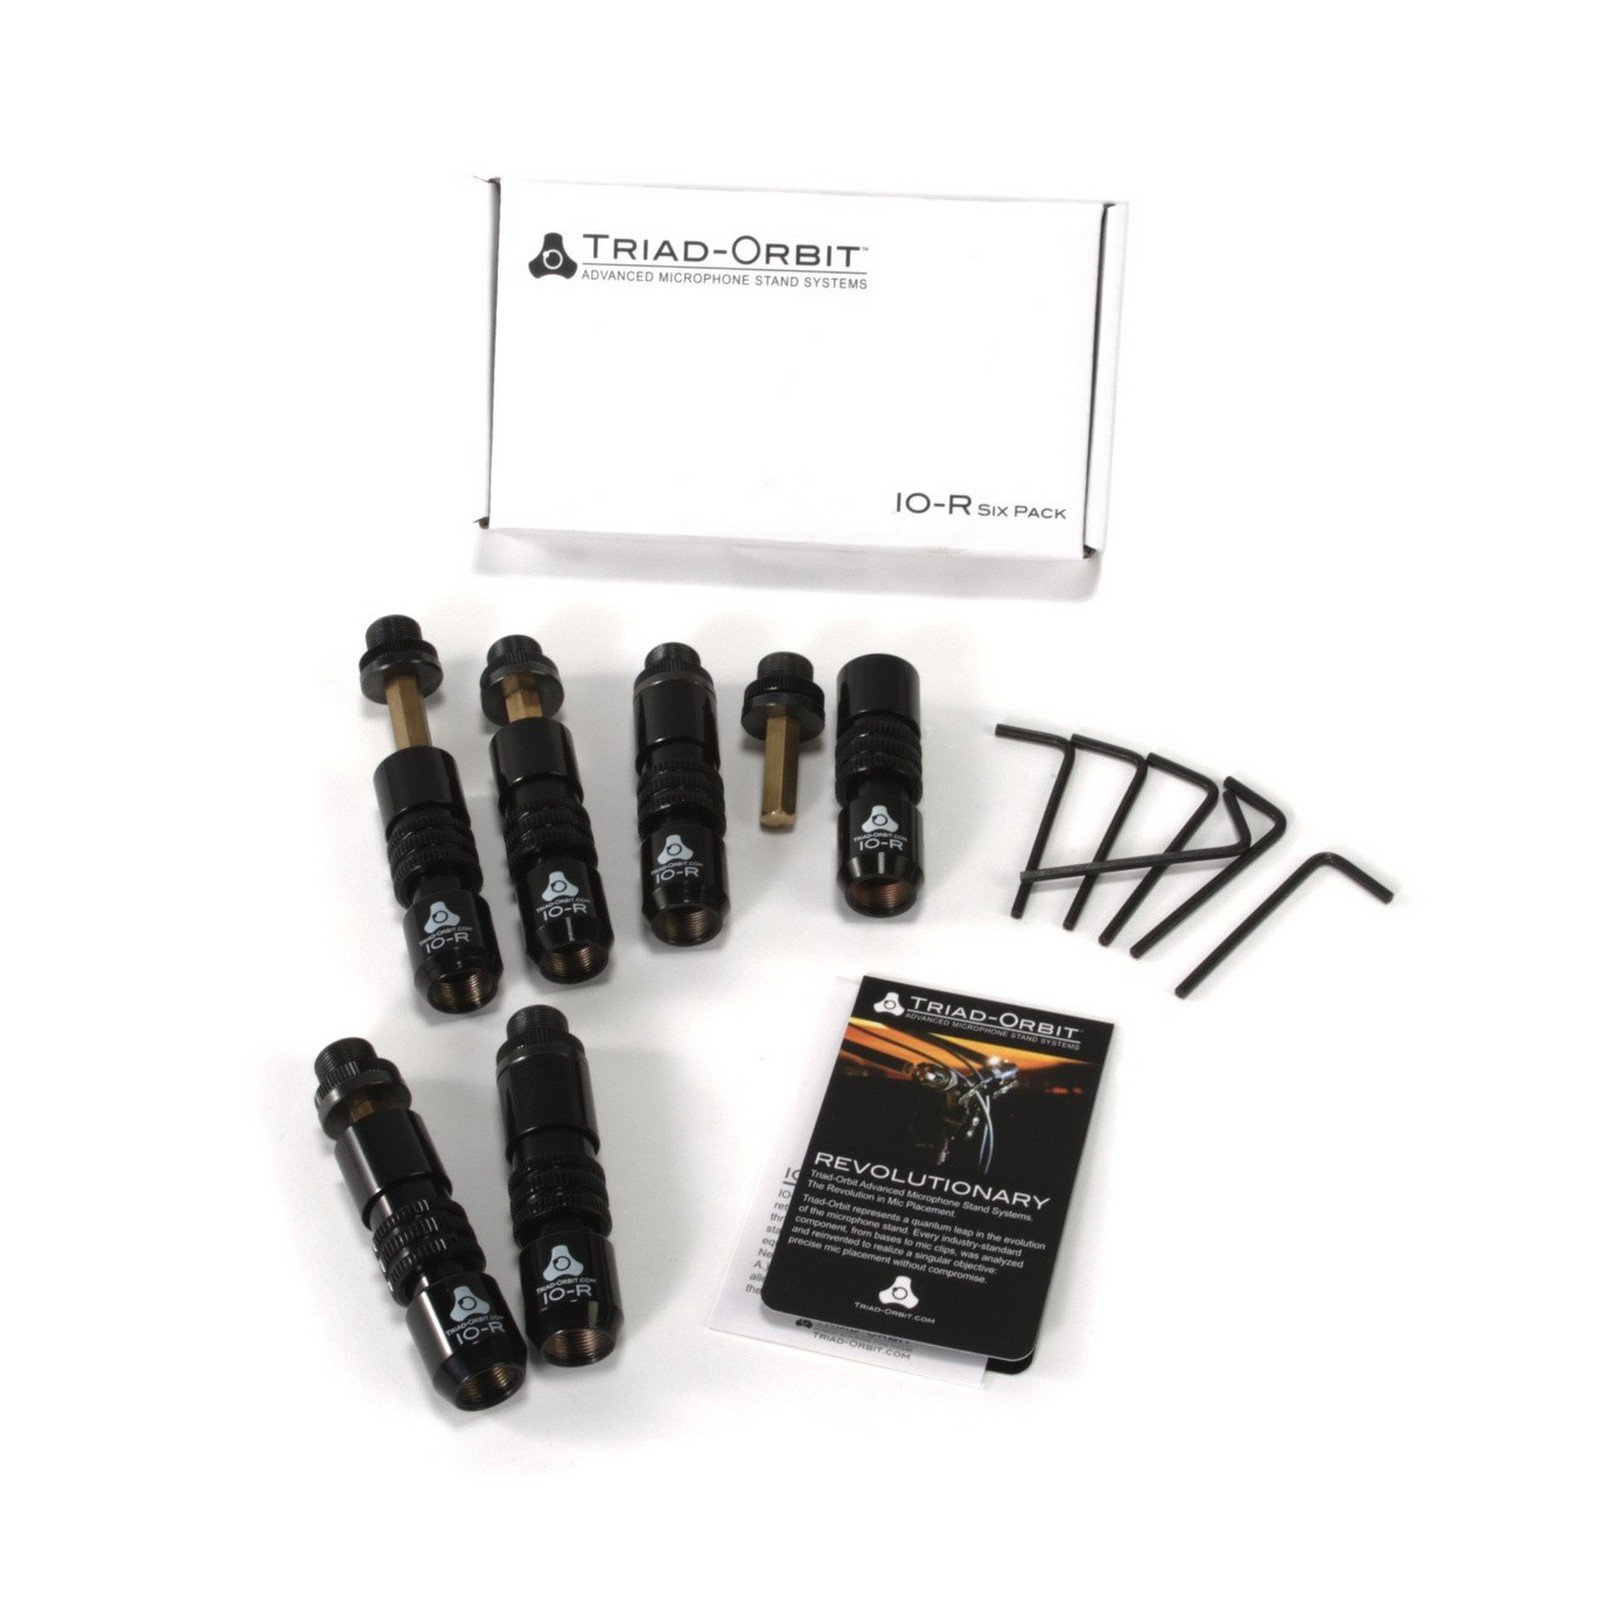 Triad Orbit IO-R/6 | 6 Pack Quick Change Couplers for Microphone Boom Poles by Triad-Orbit